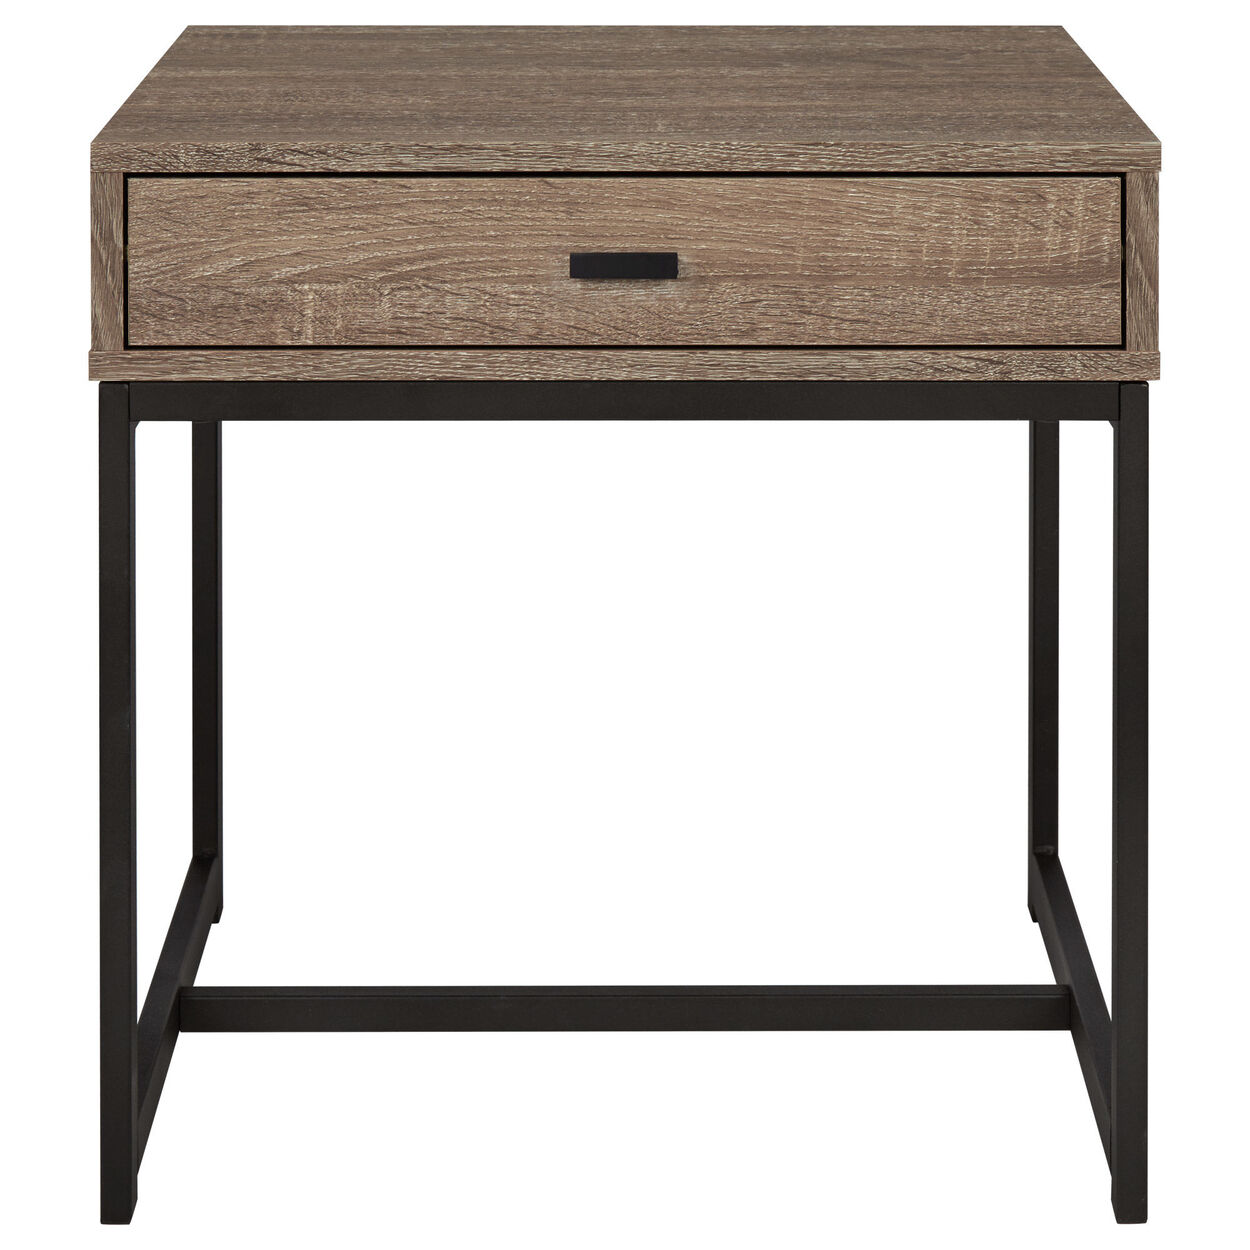 Wood veneer metal side table